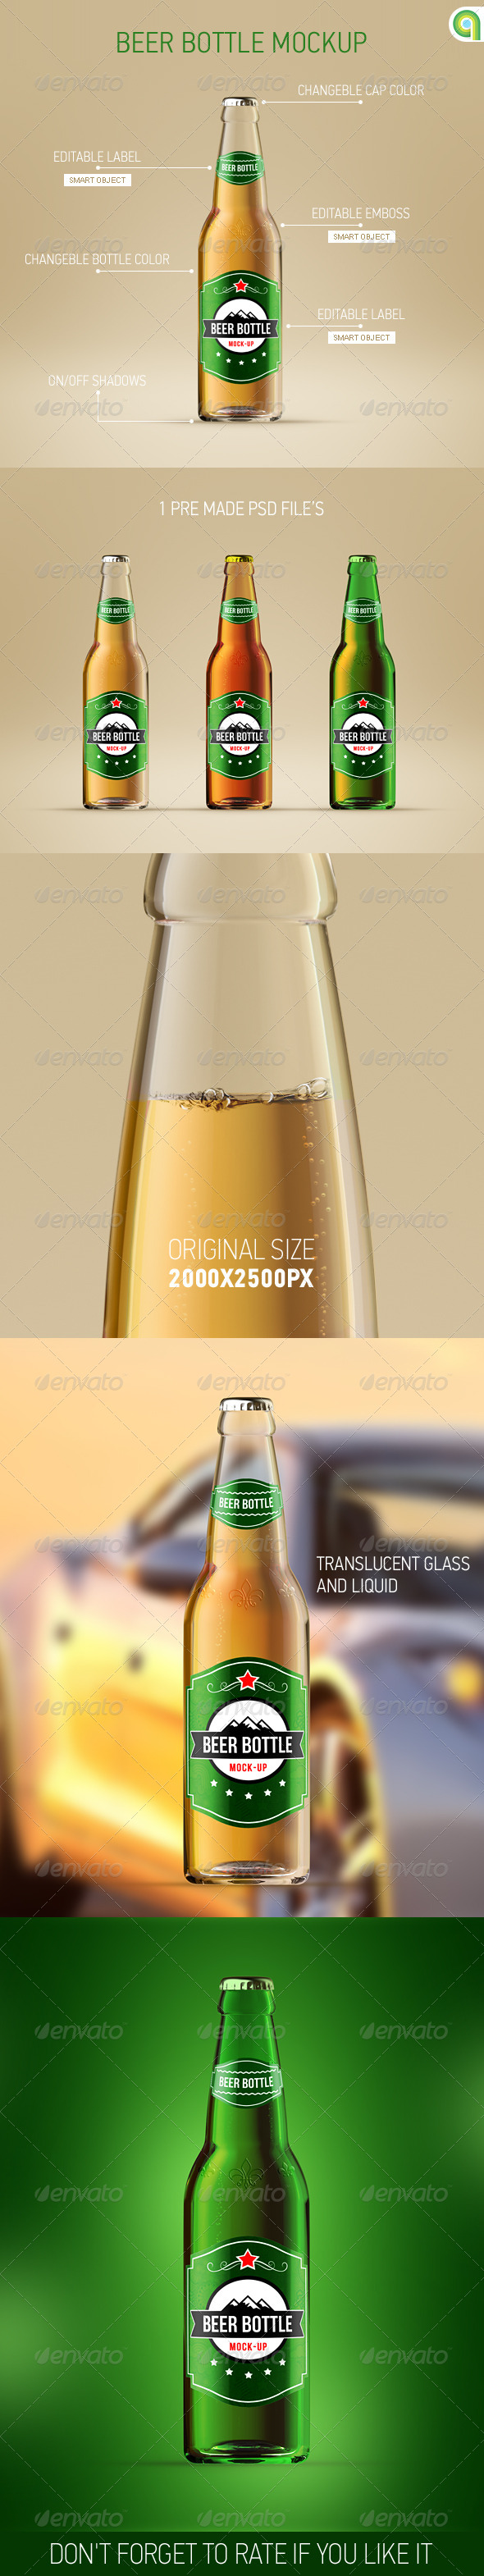 GraphicRiver Beer Bottle Mockup 7376175